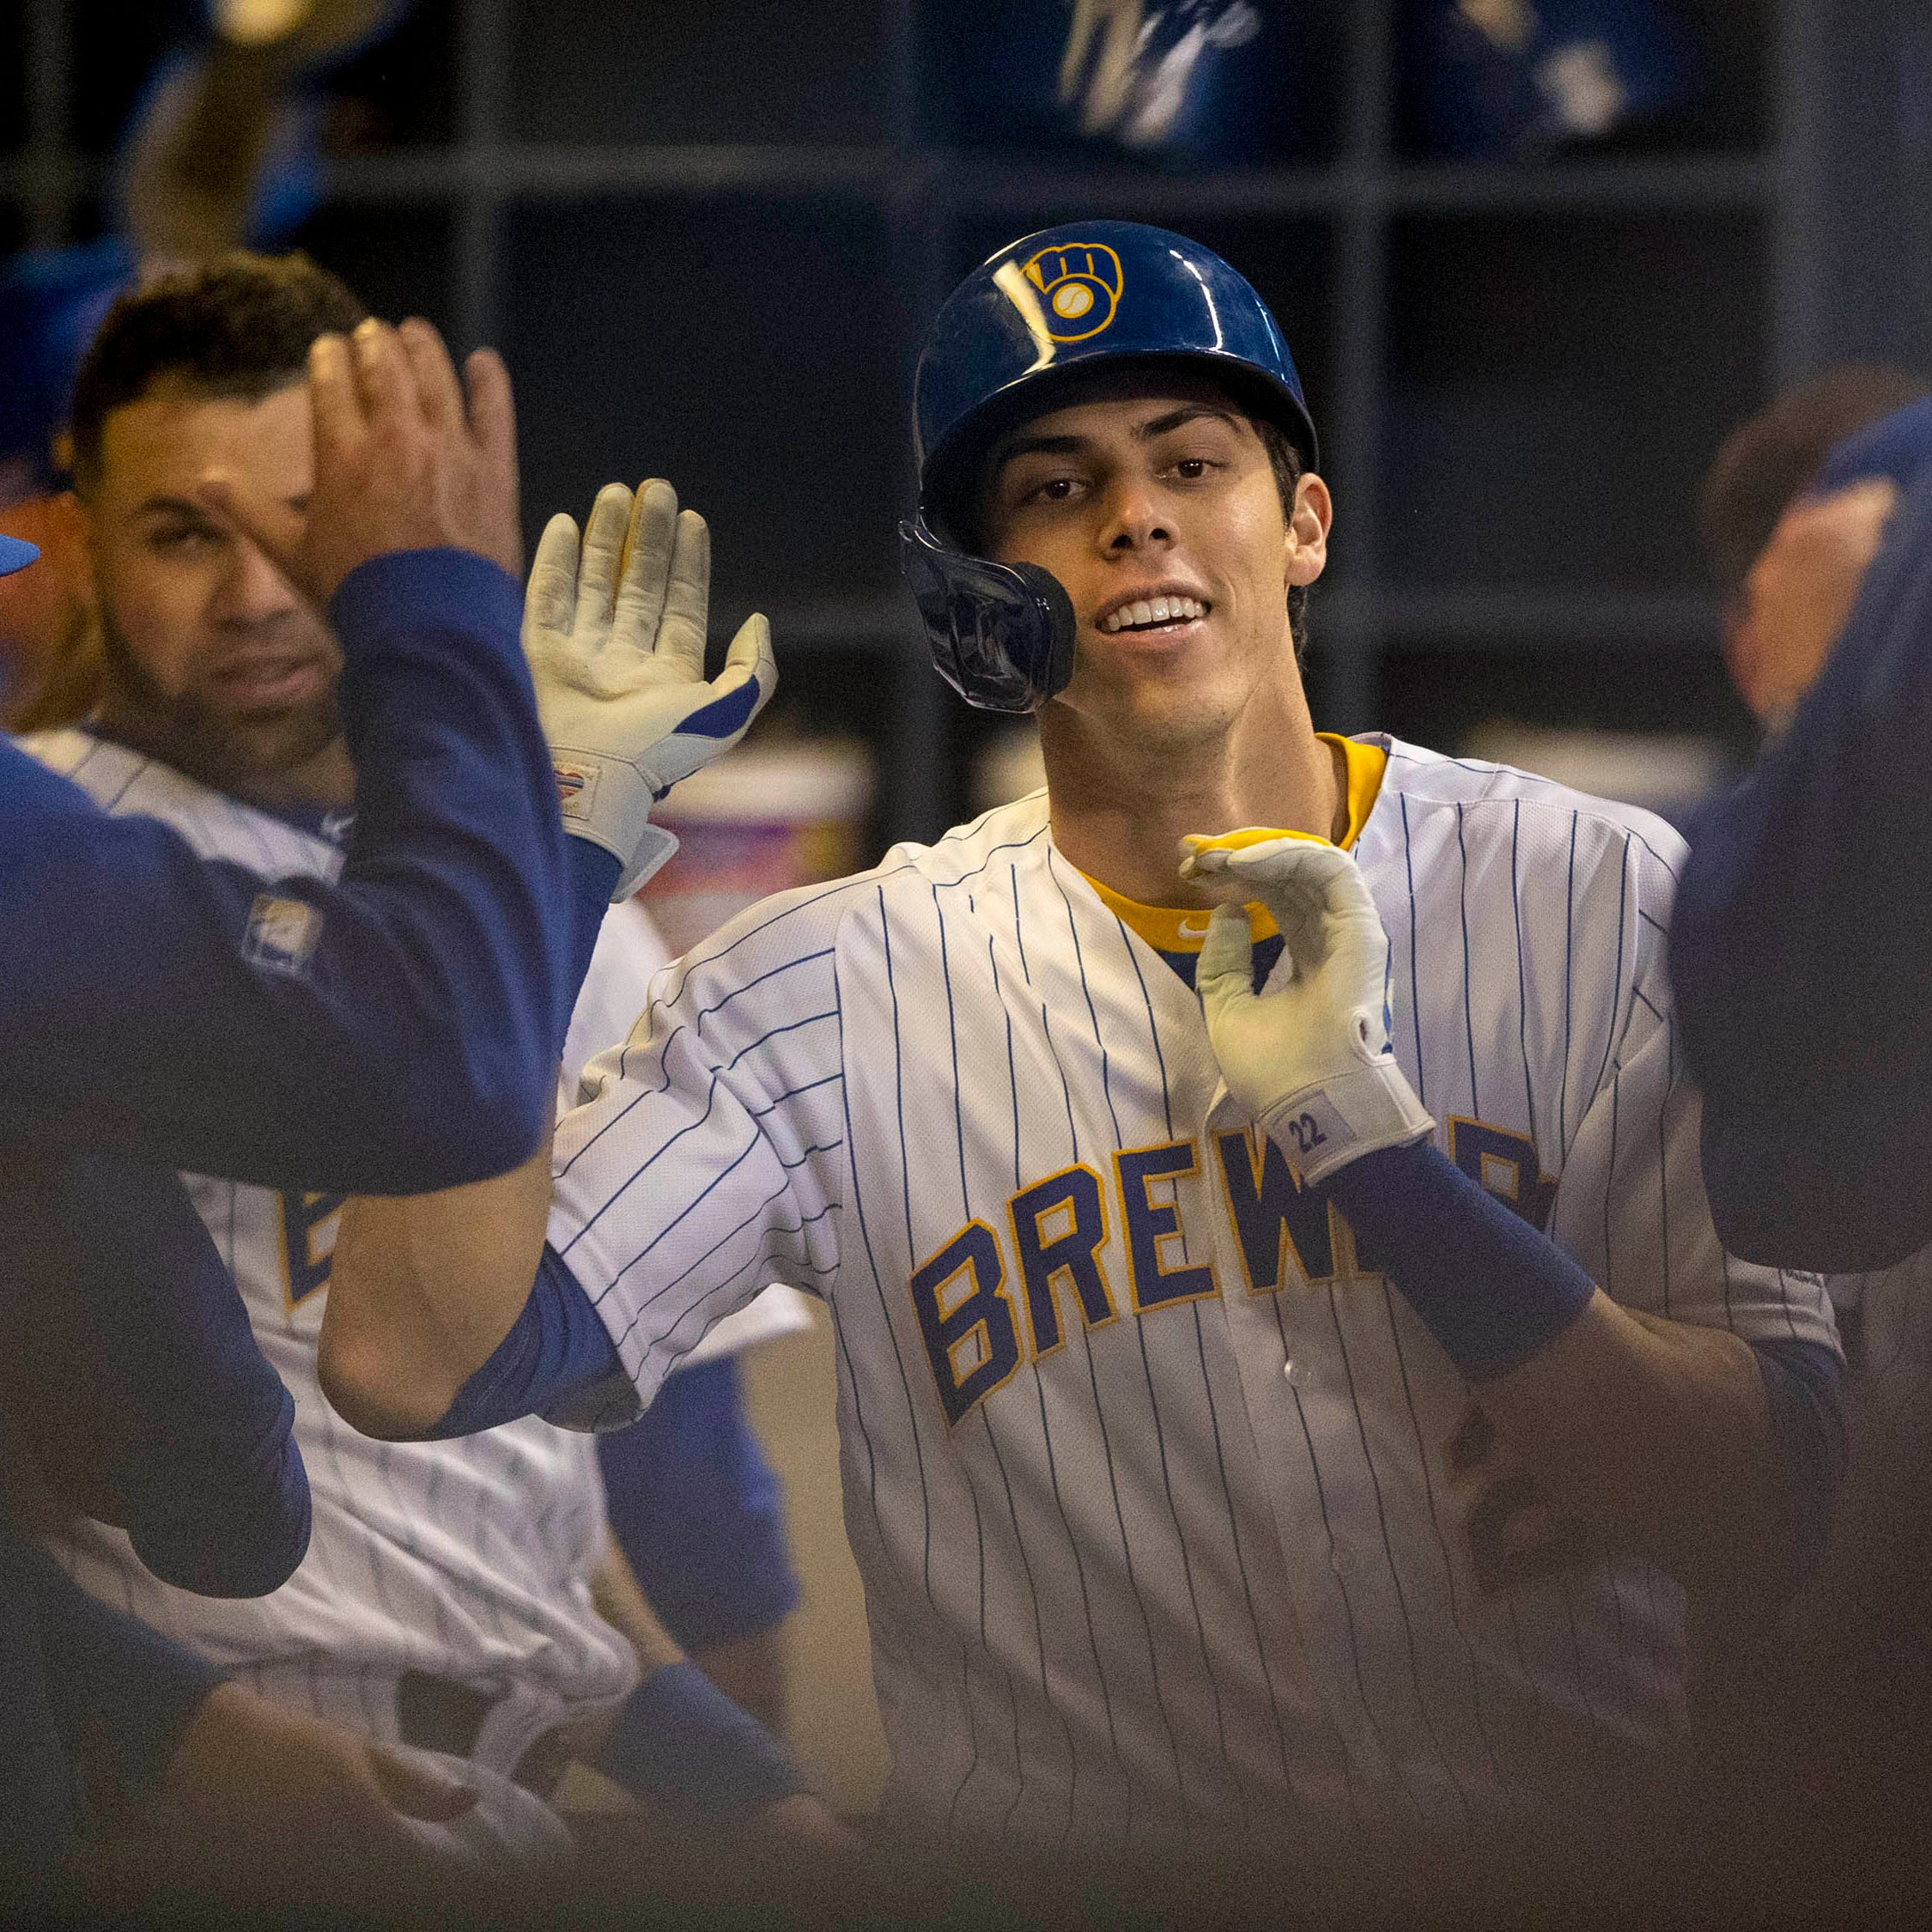 Brewers 5, Dodgers 0: Christian Yelich continues to feast on home cooking with two more homers